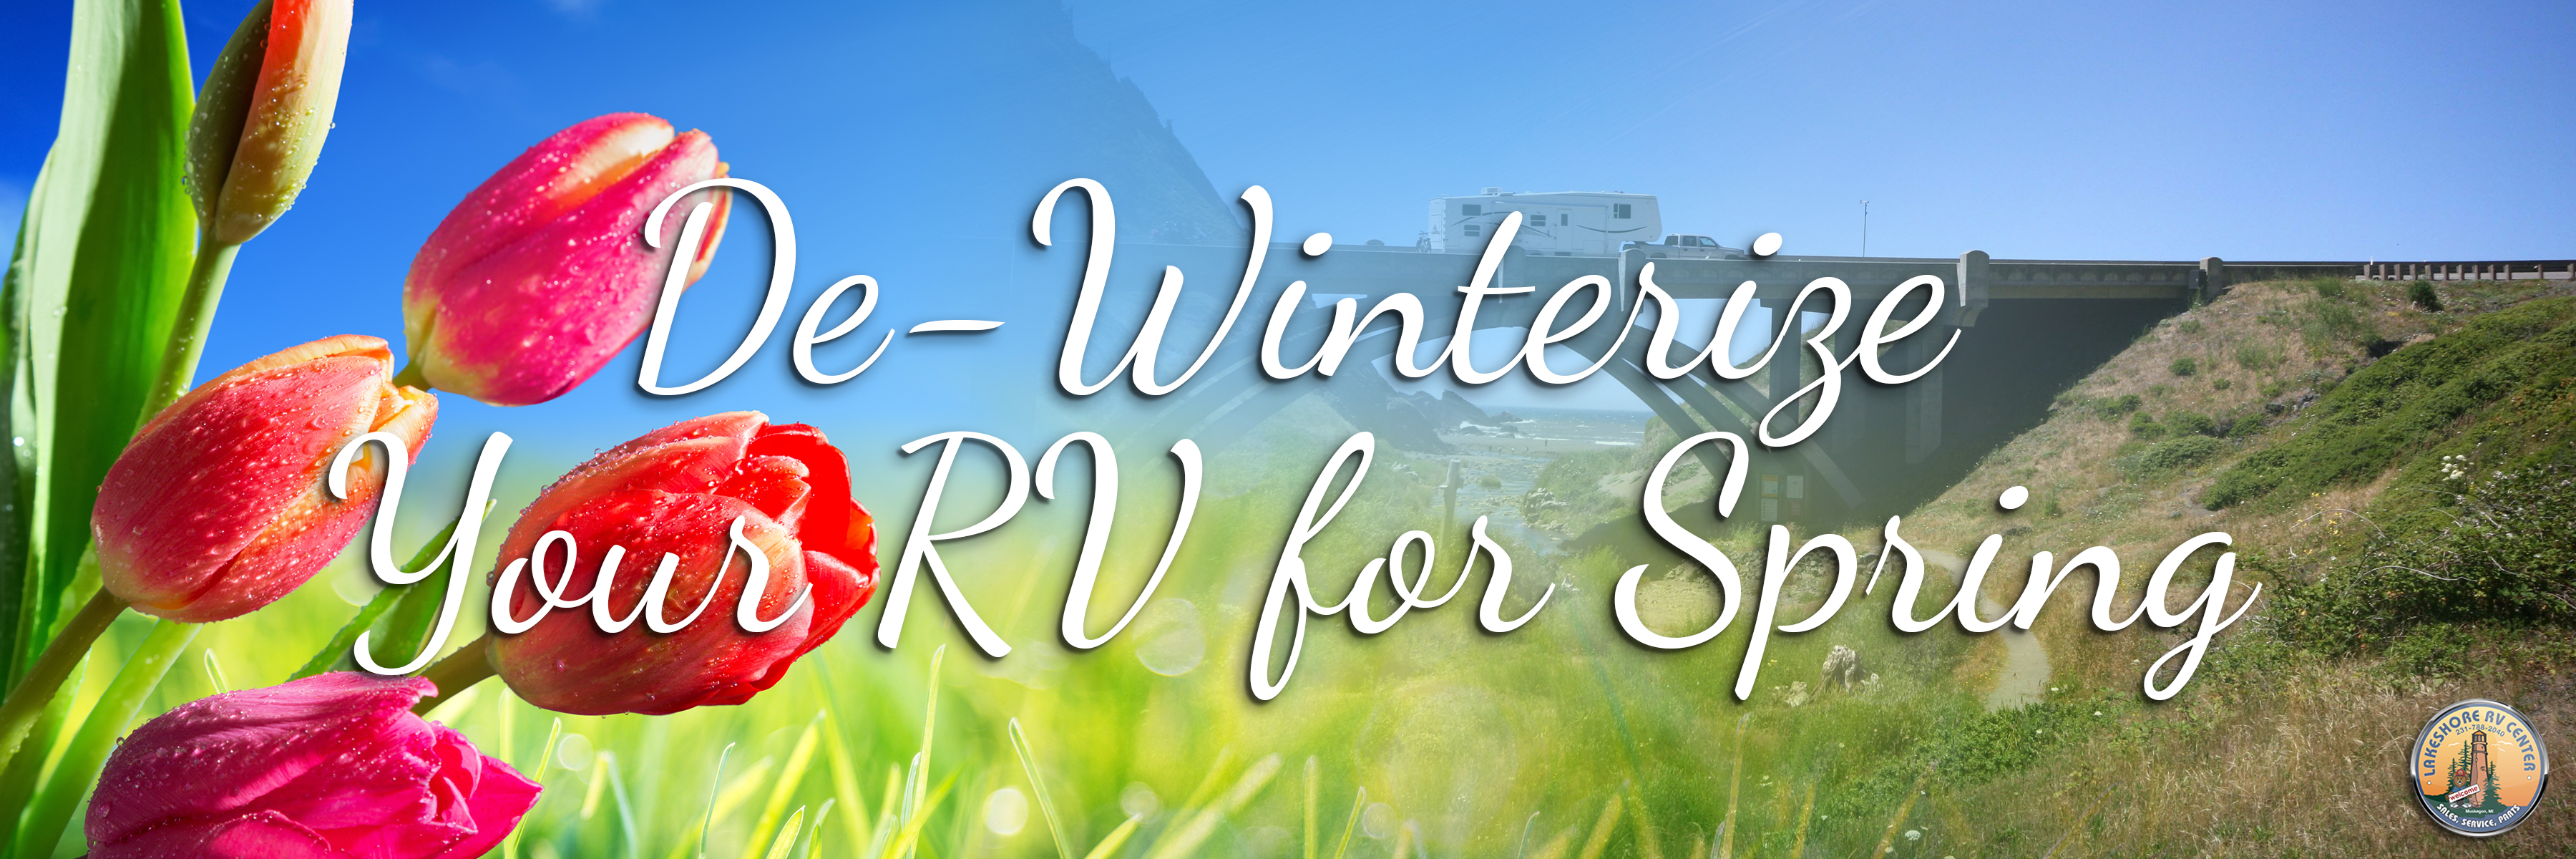 De-Winterize Your RV for Spring  banner